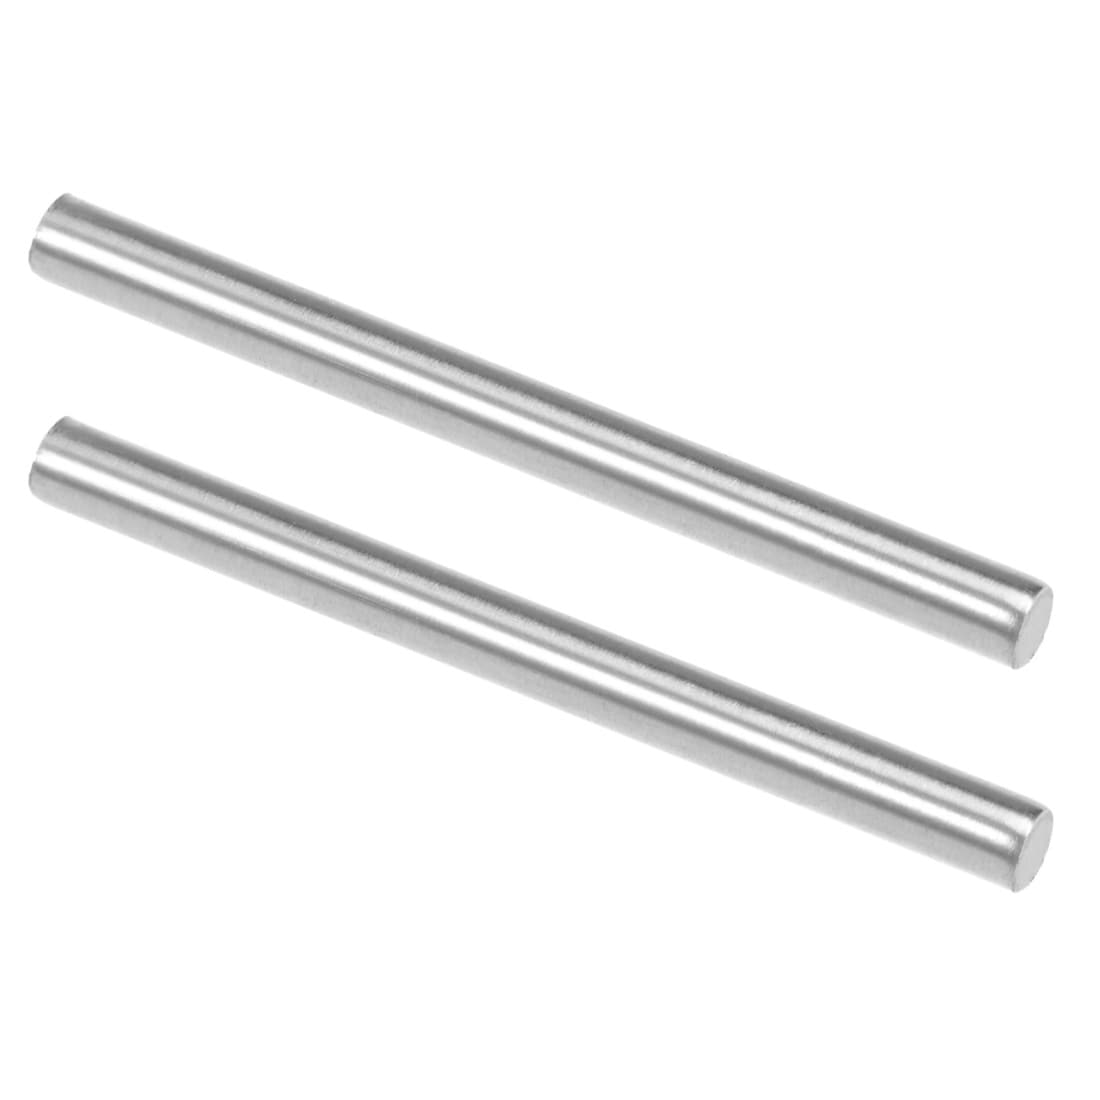 50Pcs Round Shaft Rods Axles Stainless Steel 3mm x 30mm for RC Toy Car